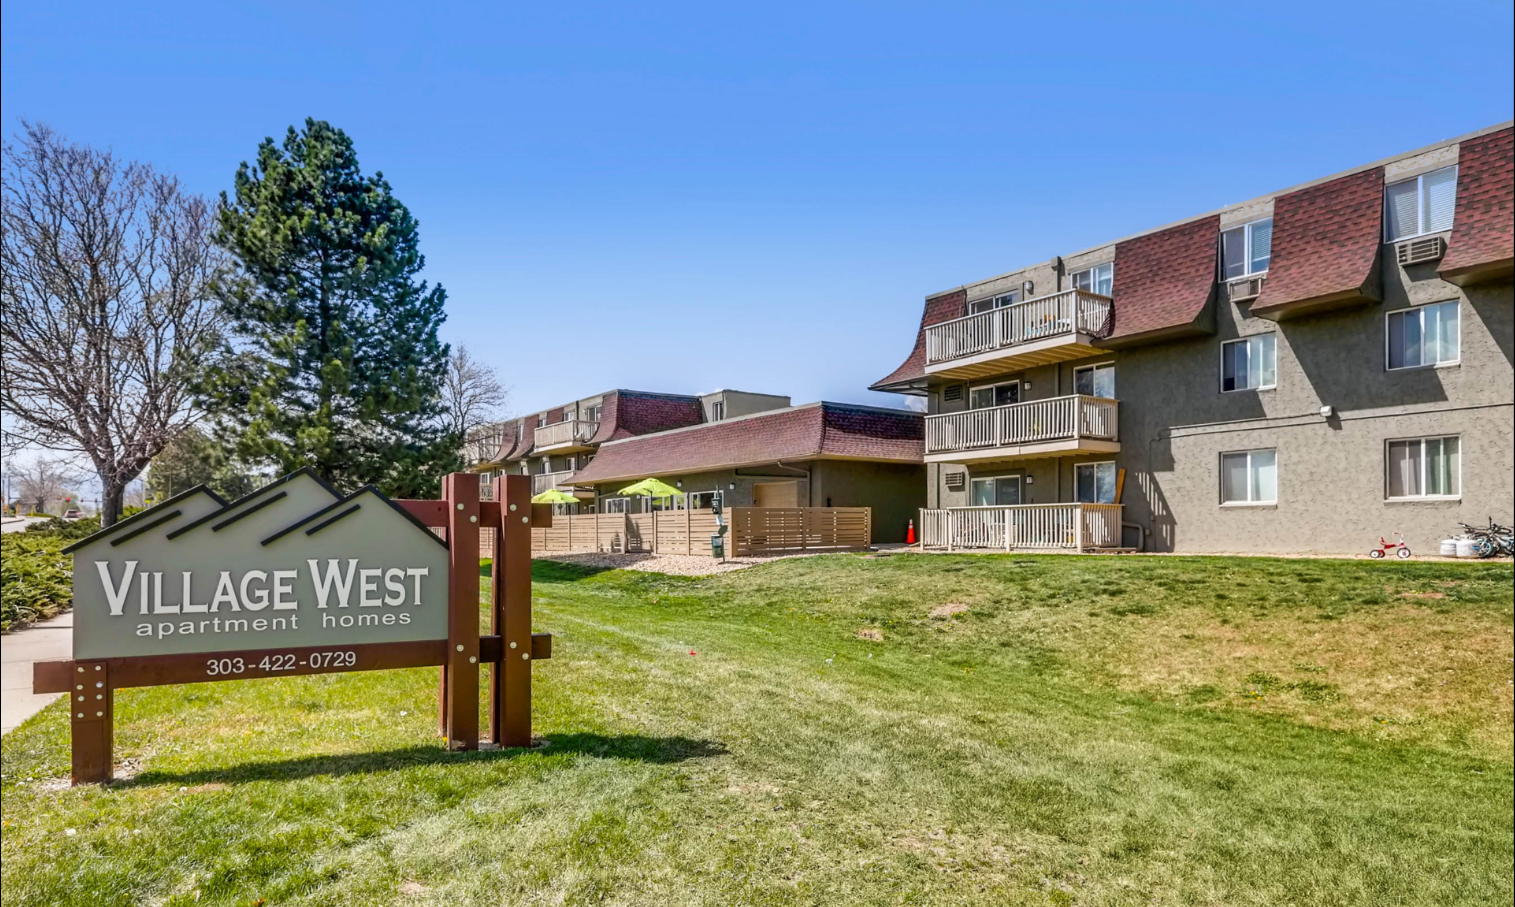 Village West Apartments Acquired For $10,825,000 Greystone Unique Apartment  Group Represents Purchase Of 58 Unit Asset